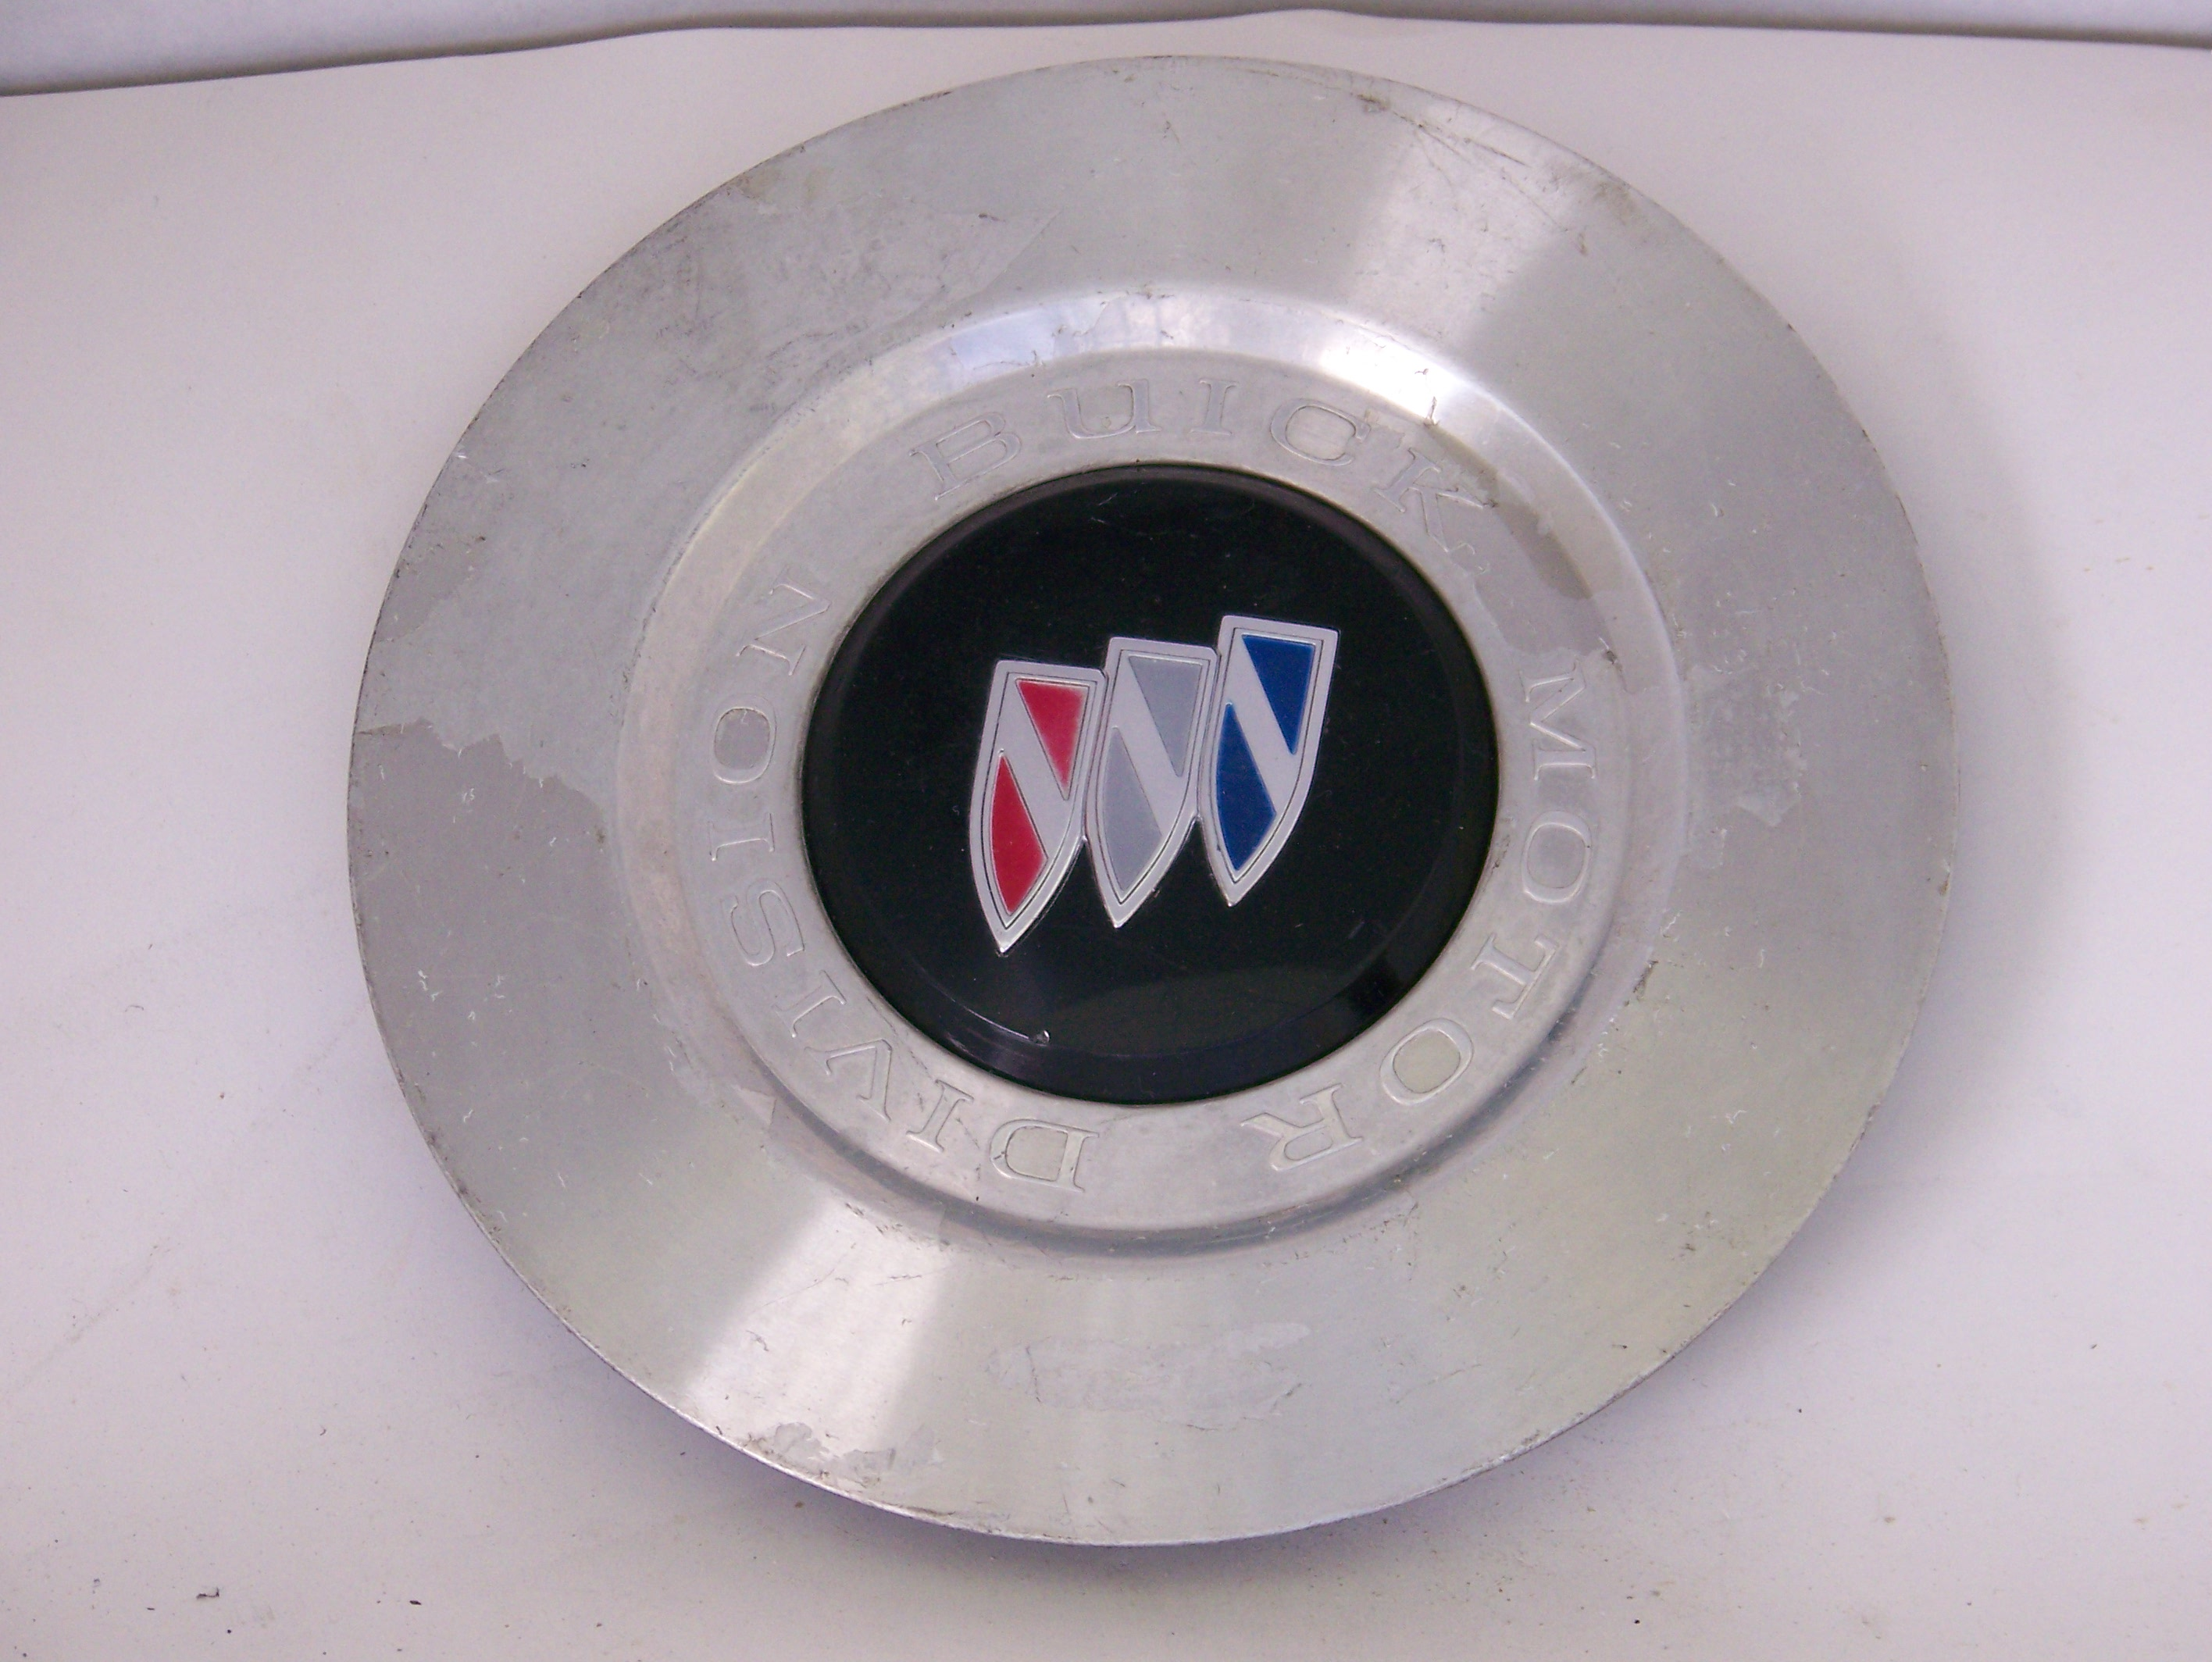 Buick Roadmaster 91-94 Center Cap 4003 P/N 10137832